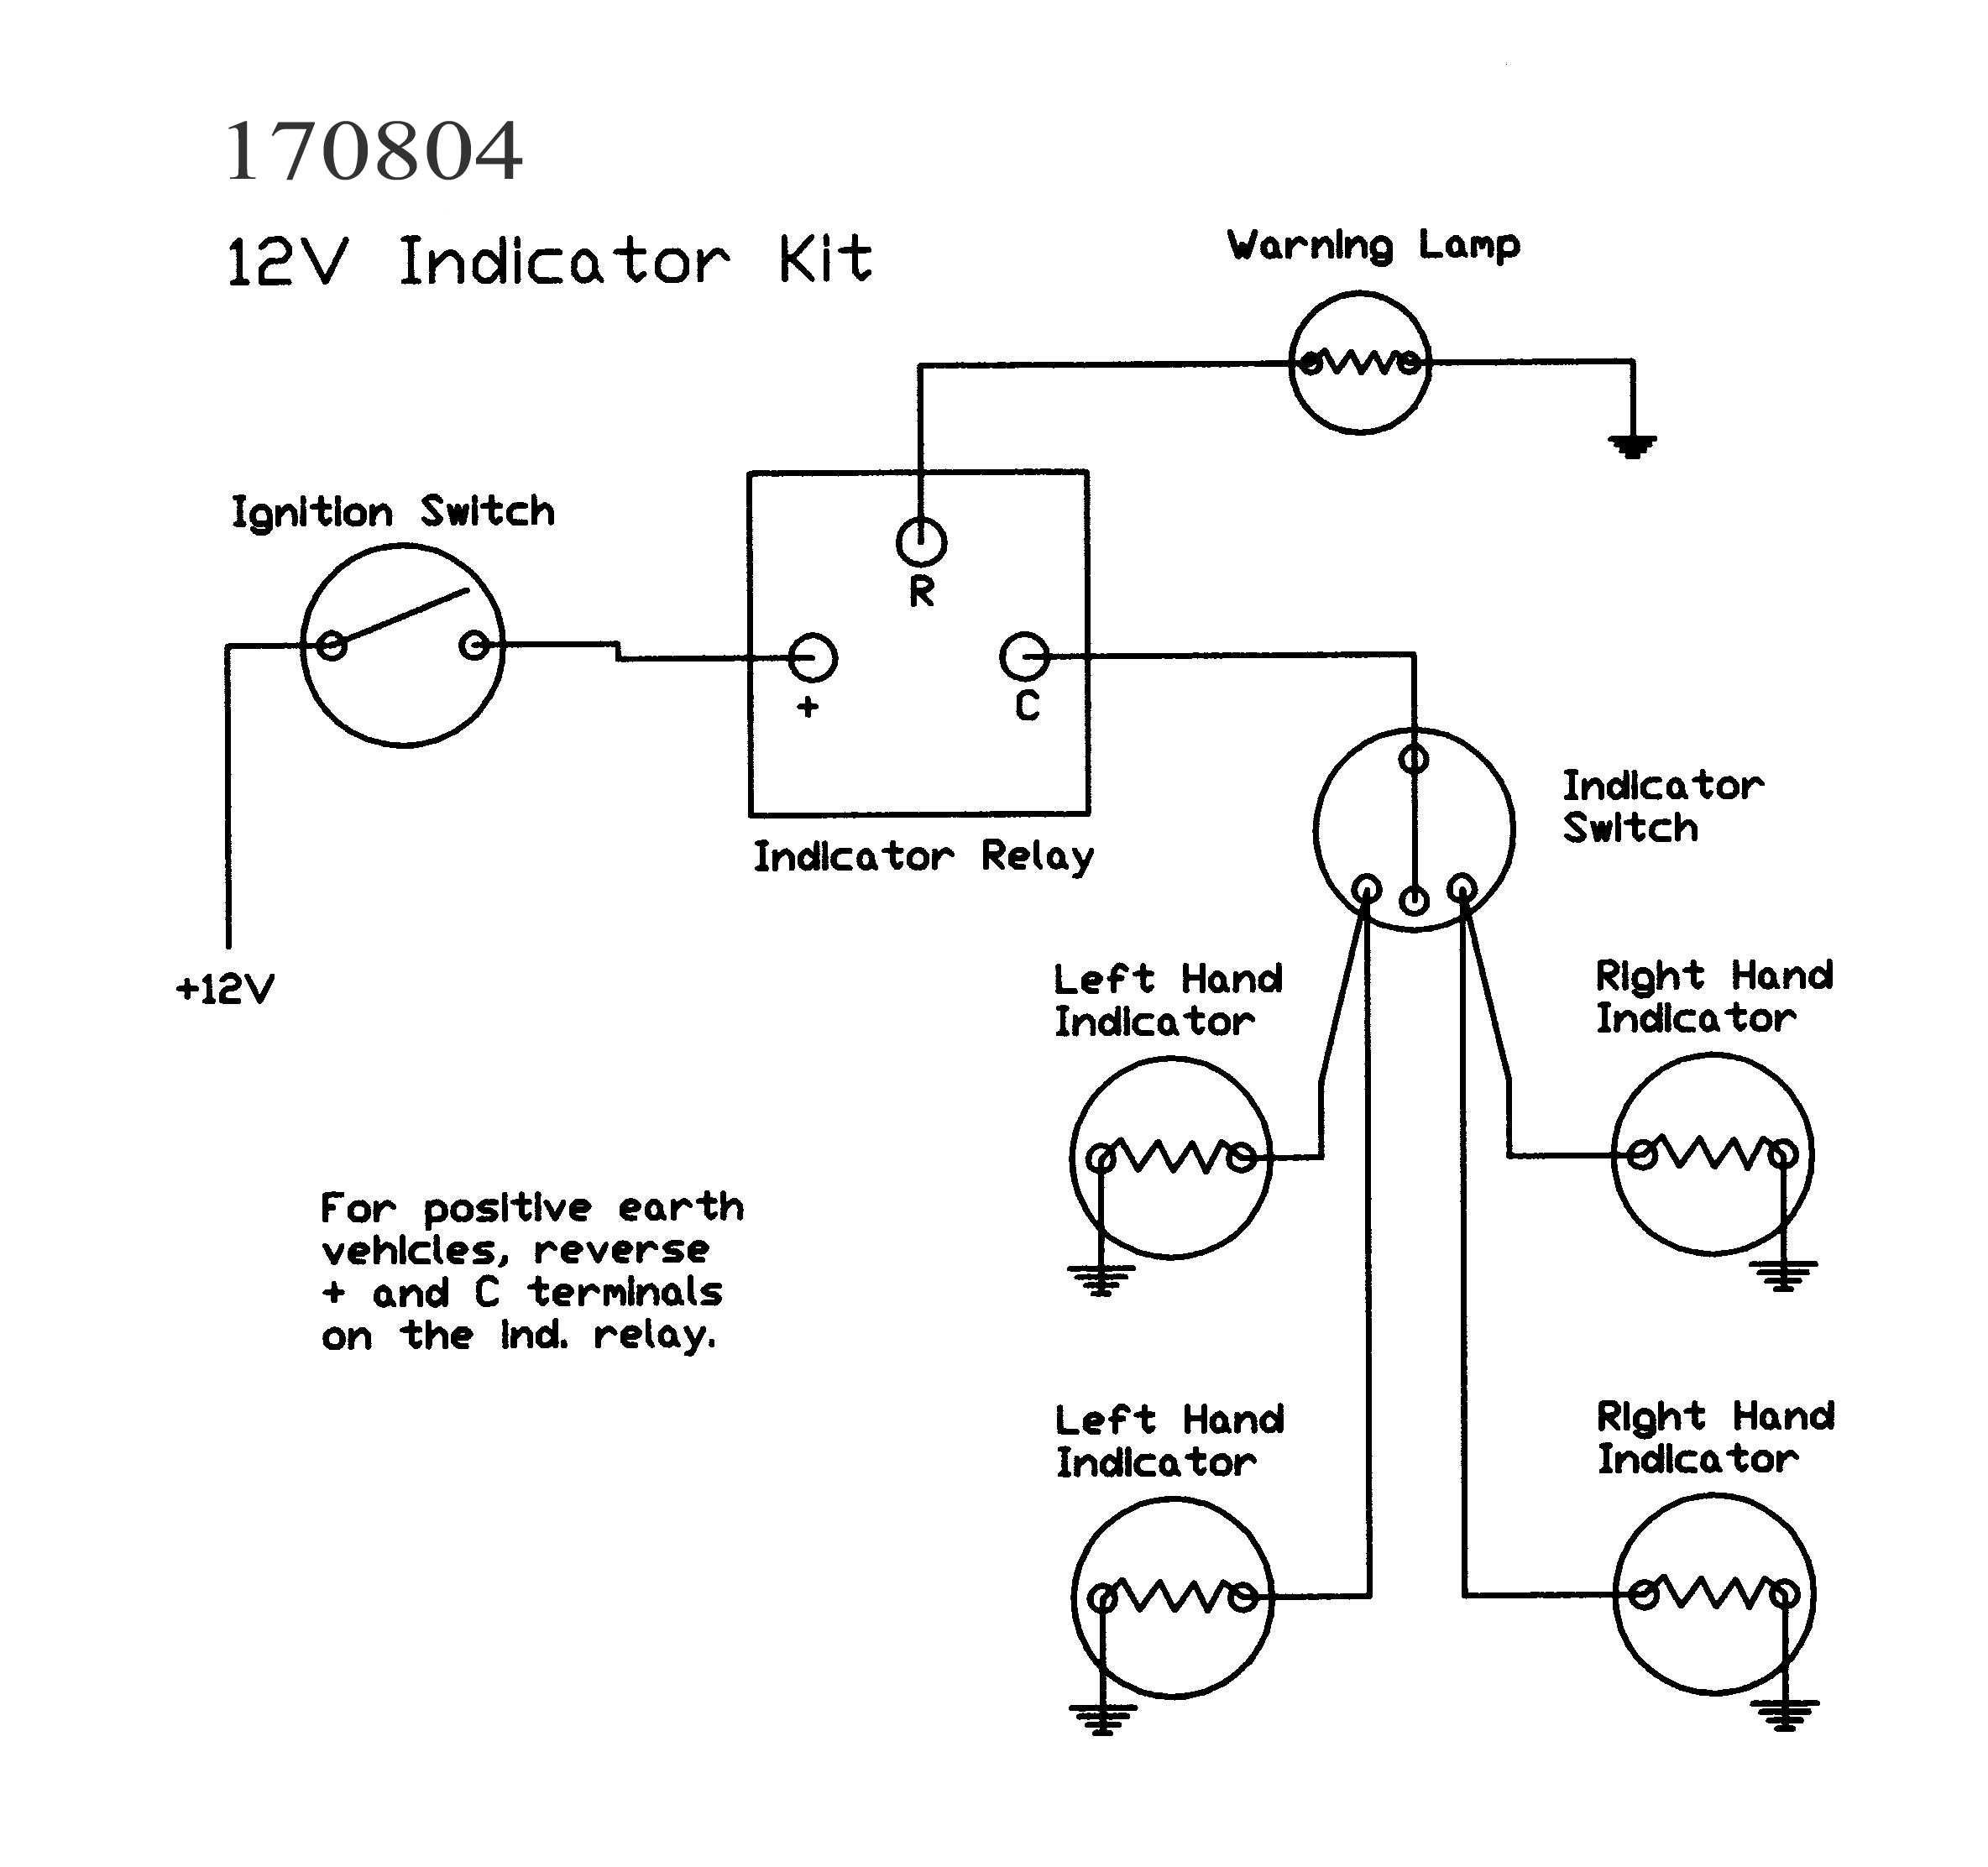 170804_(12v)_schematic indicator kits (without lamps) flasher wiring diagram 12v at creativeand.co